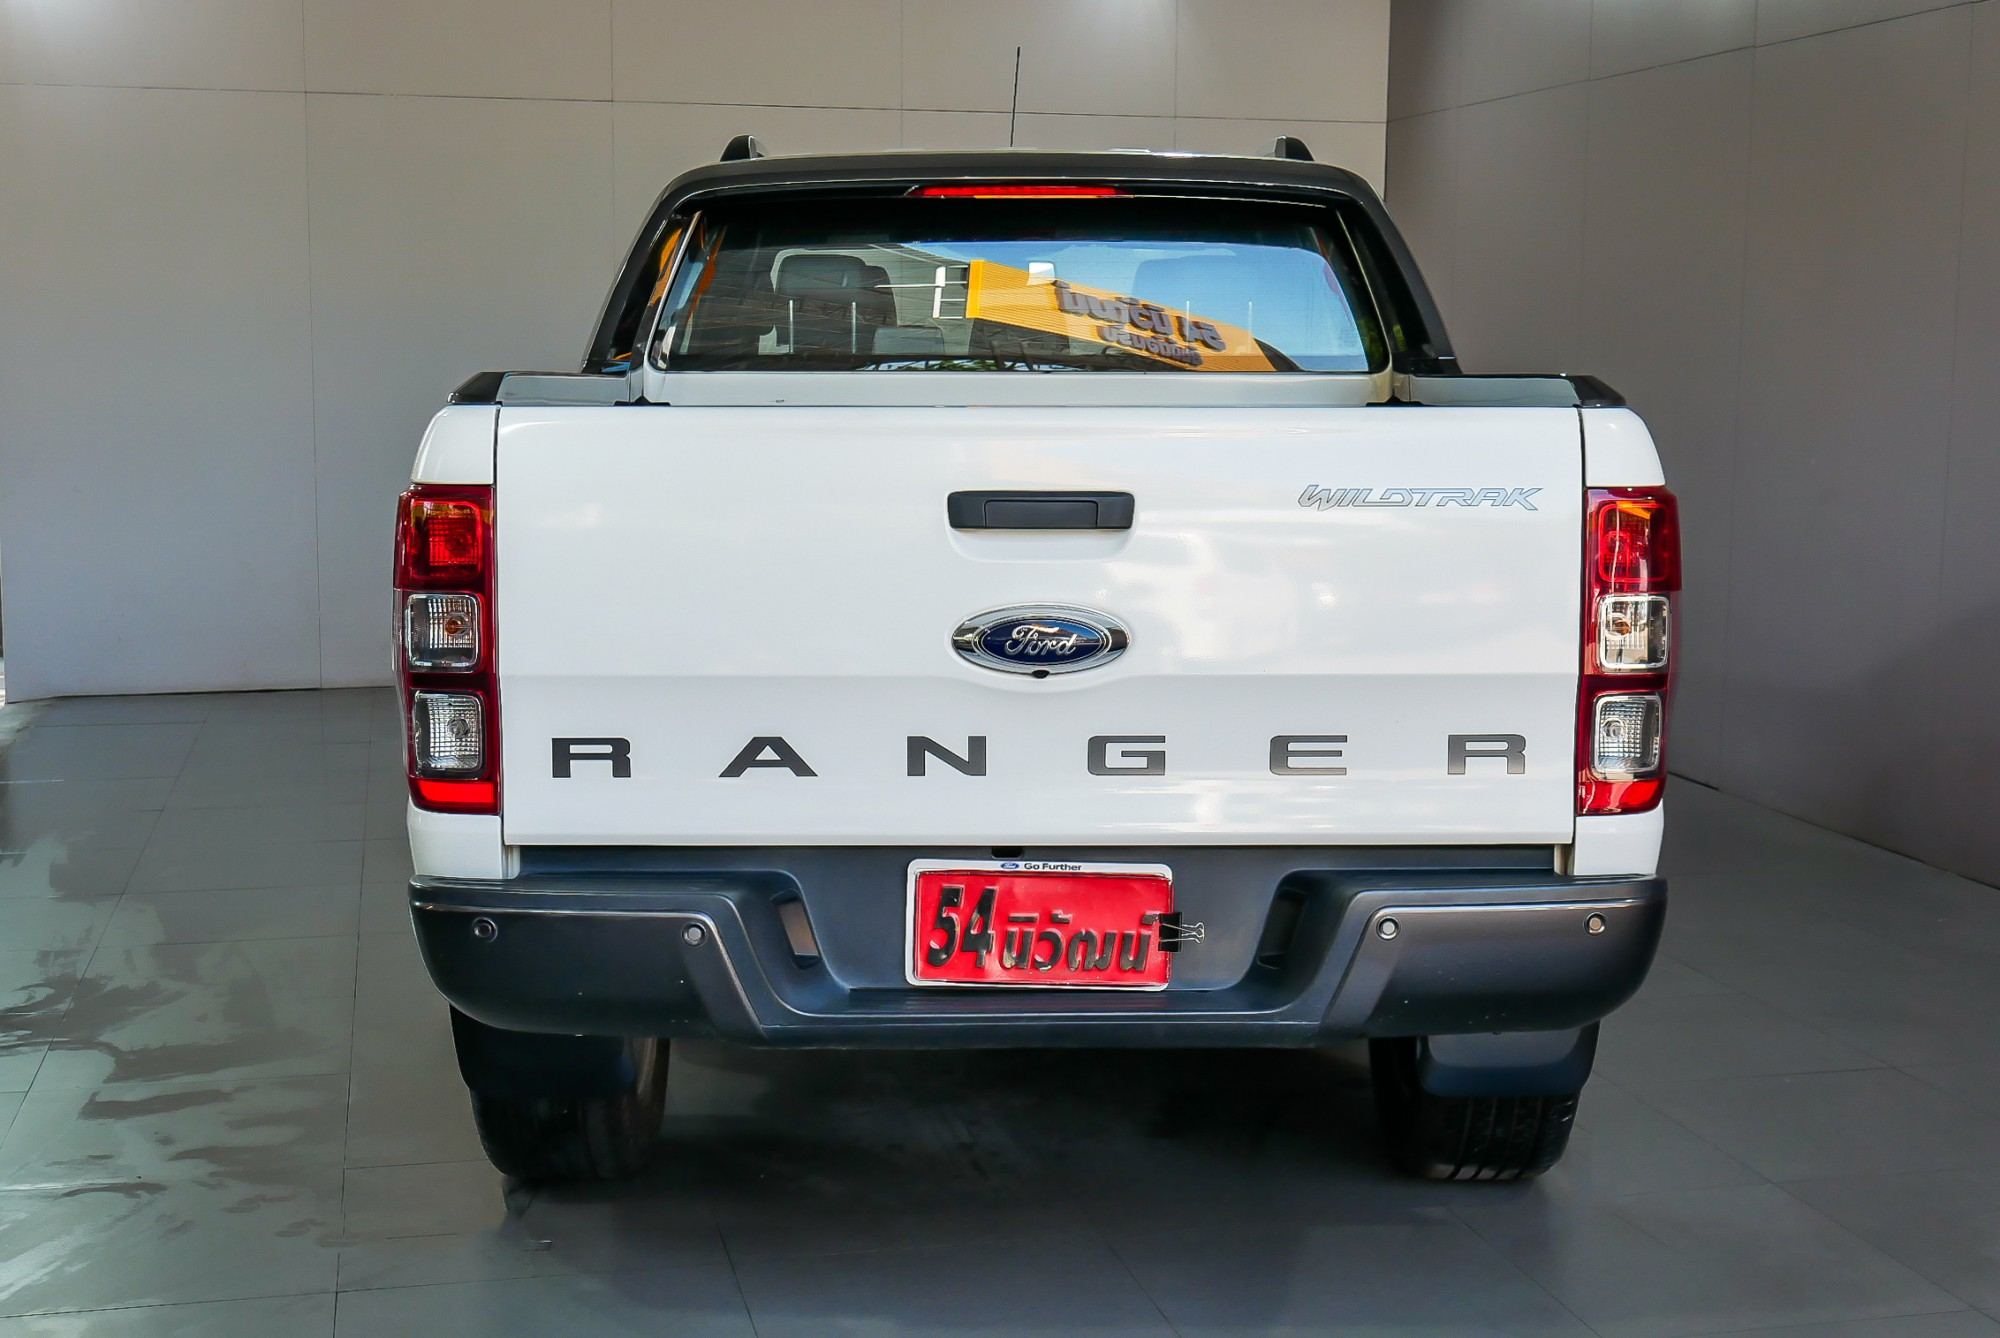 FORD RANGER DOUBLECAB 2.2 WILDTACK HI-RIDER MNC AT ปี 2016 สีขาว